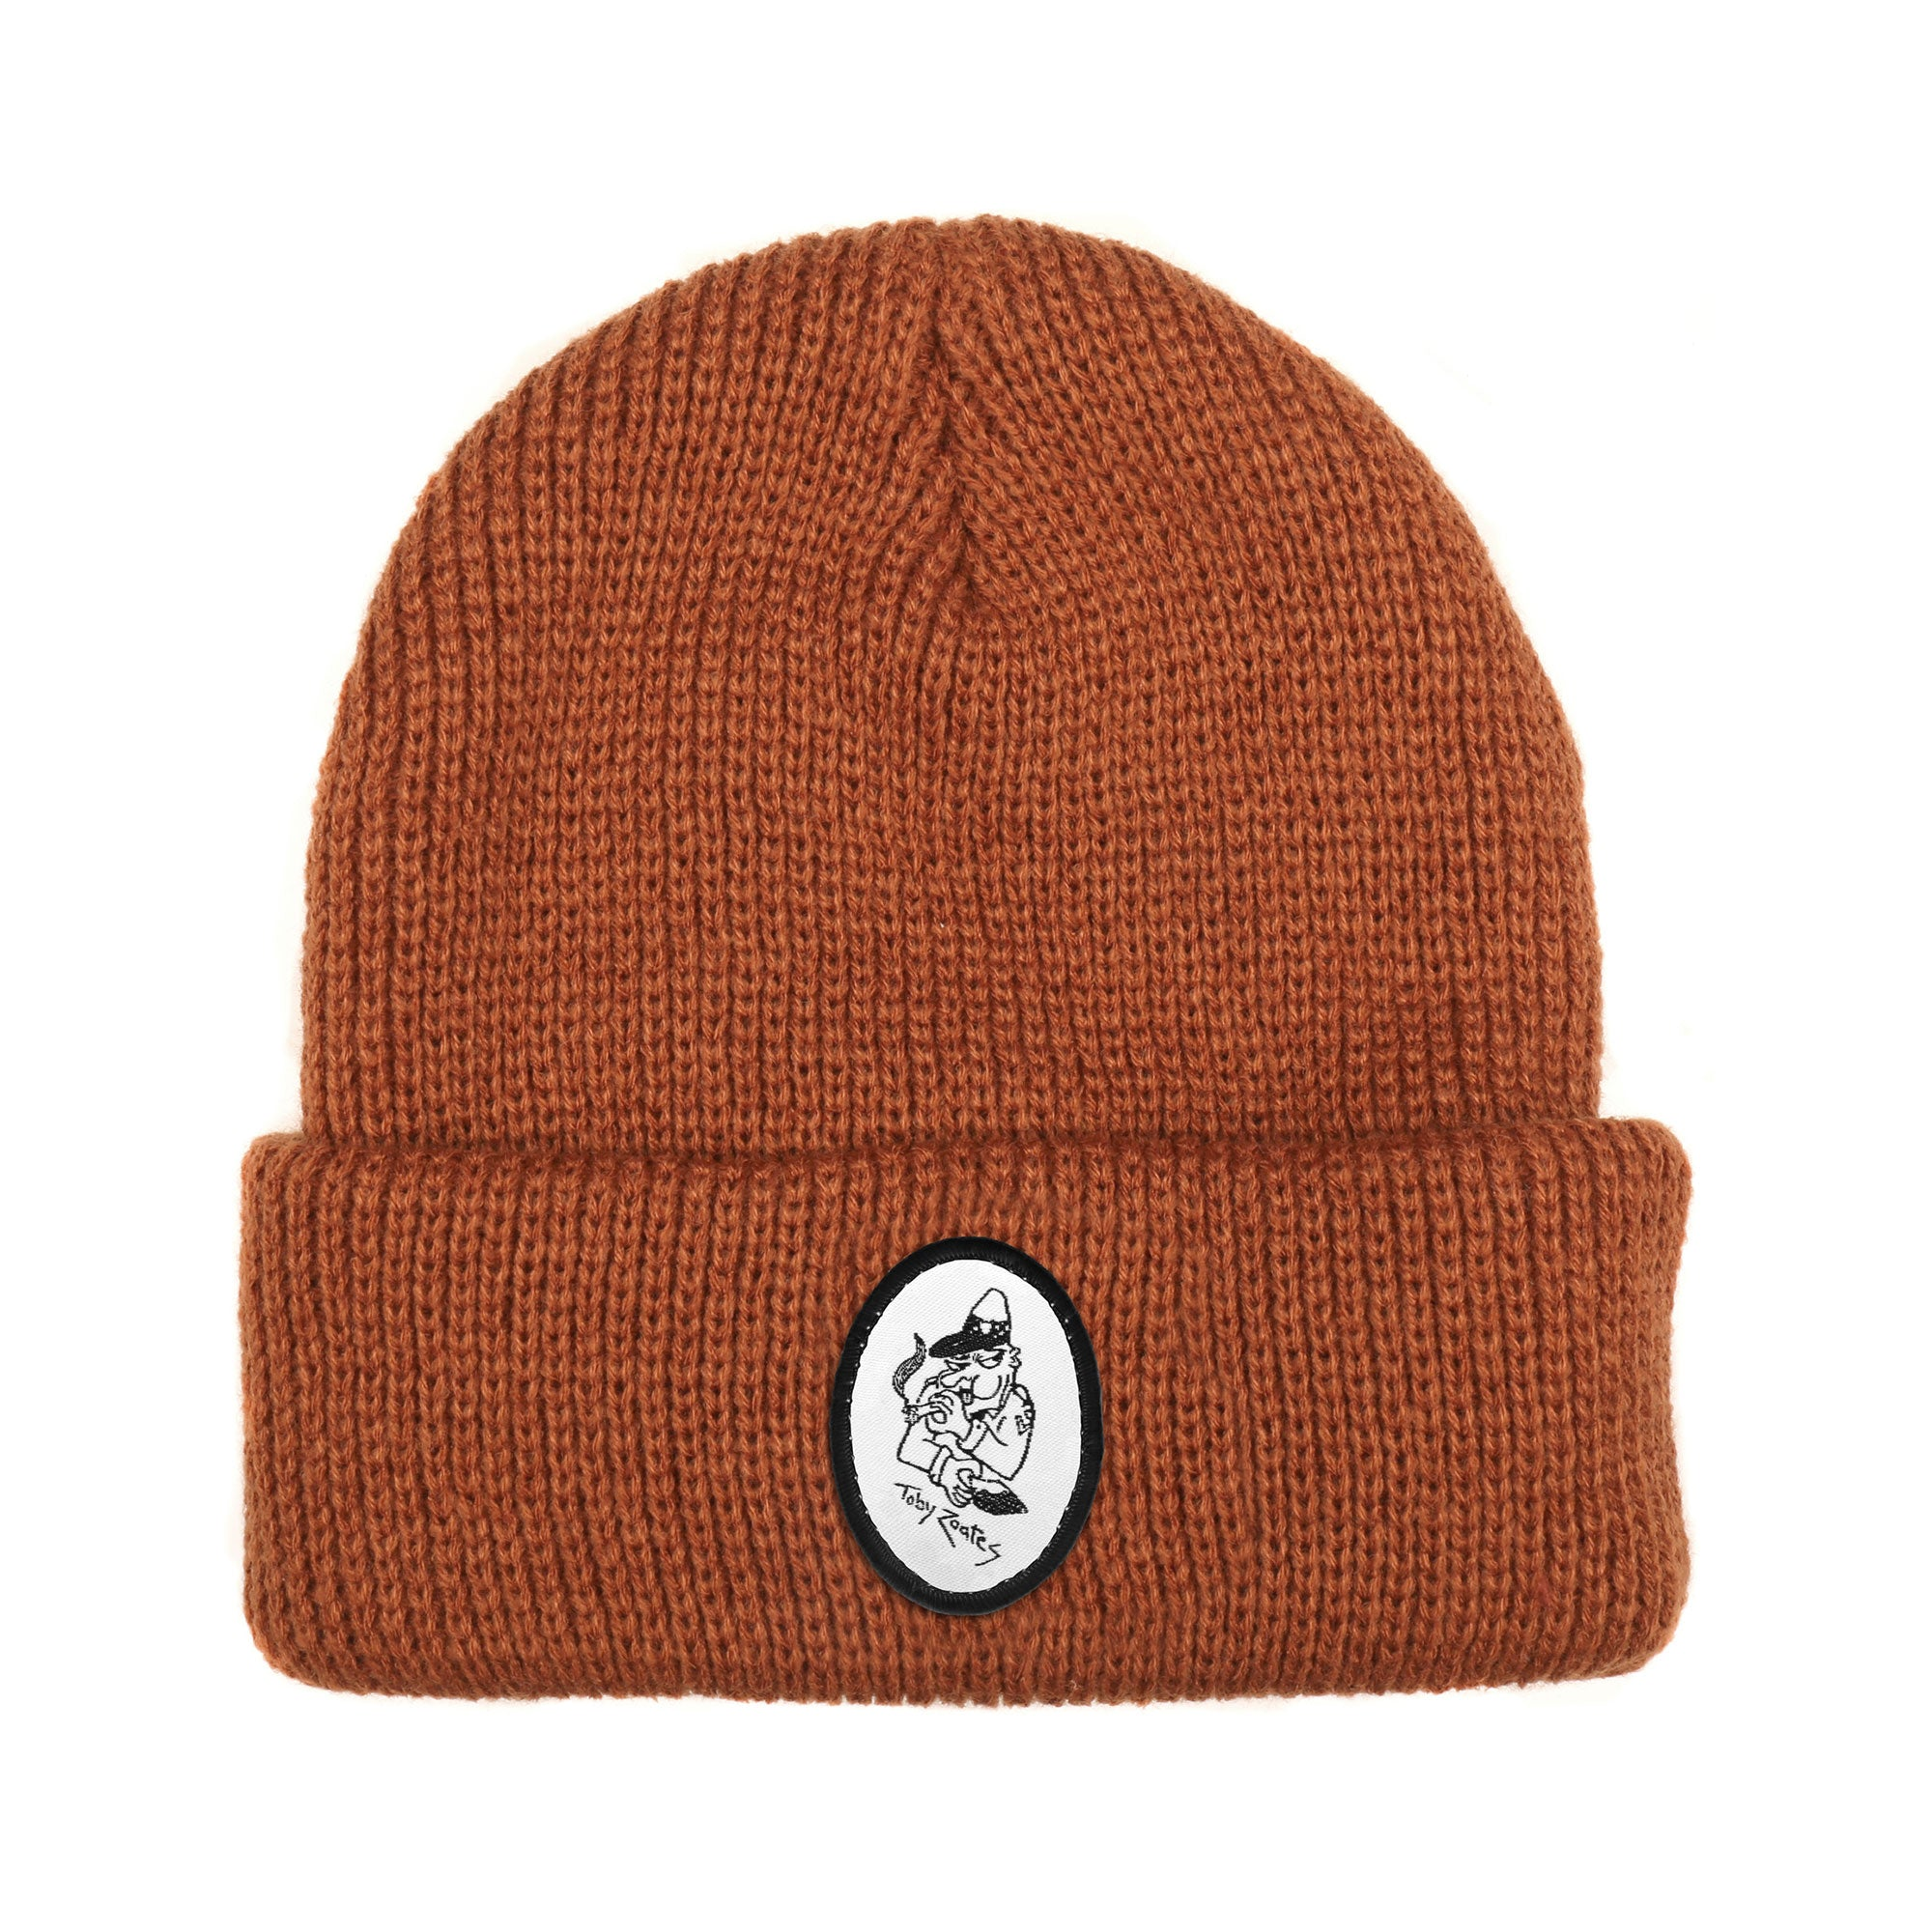 Passport Toby Zoates Copper Beanie Product Photo #1